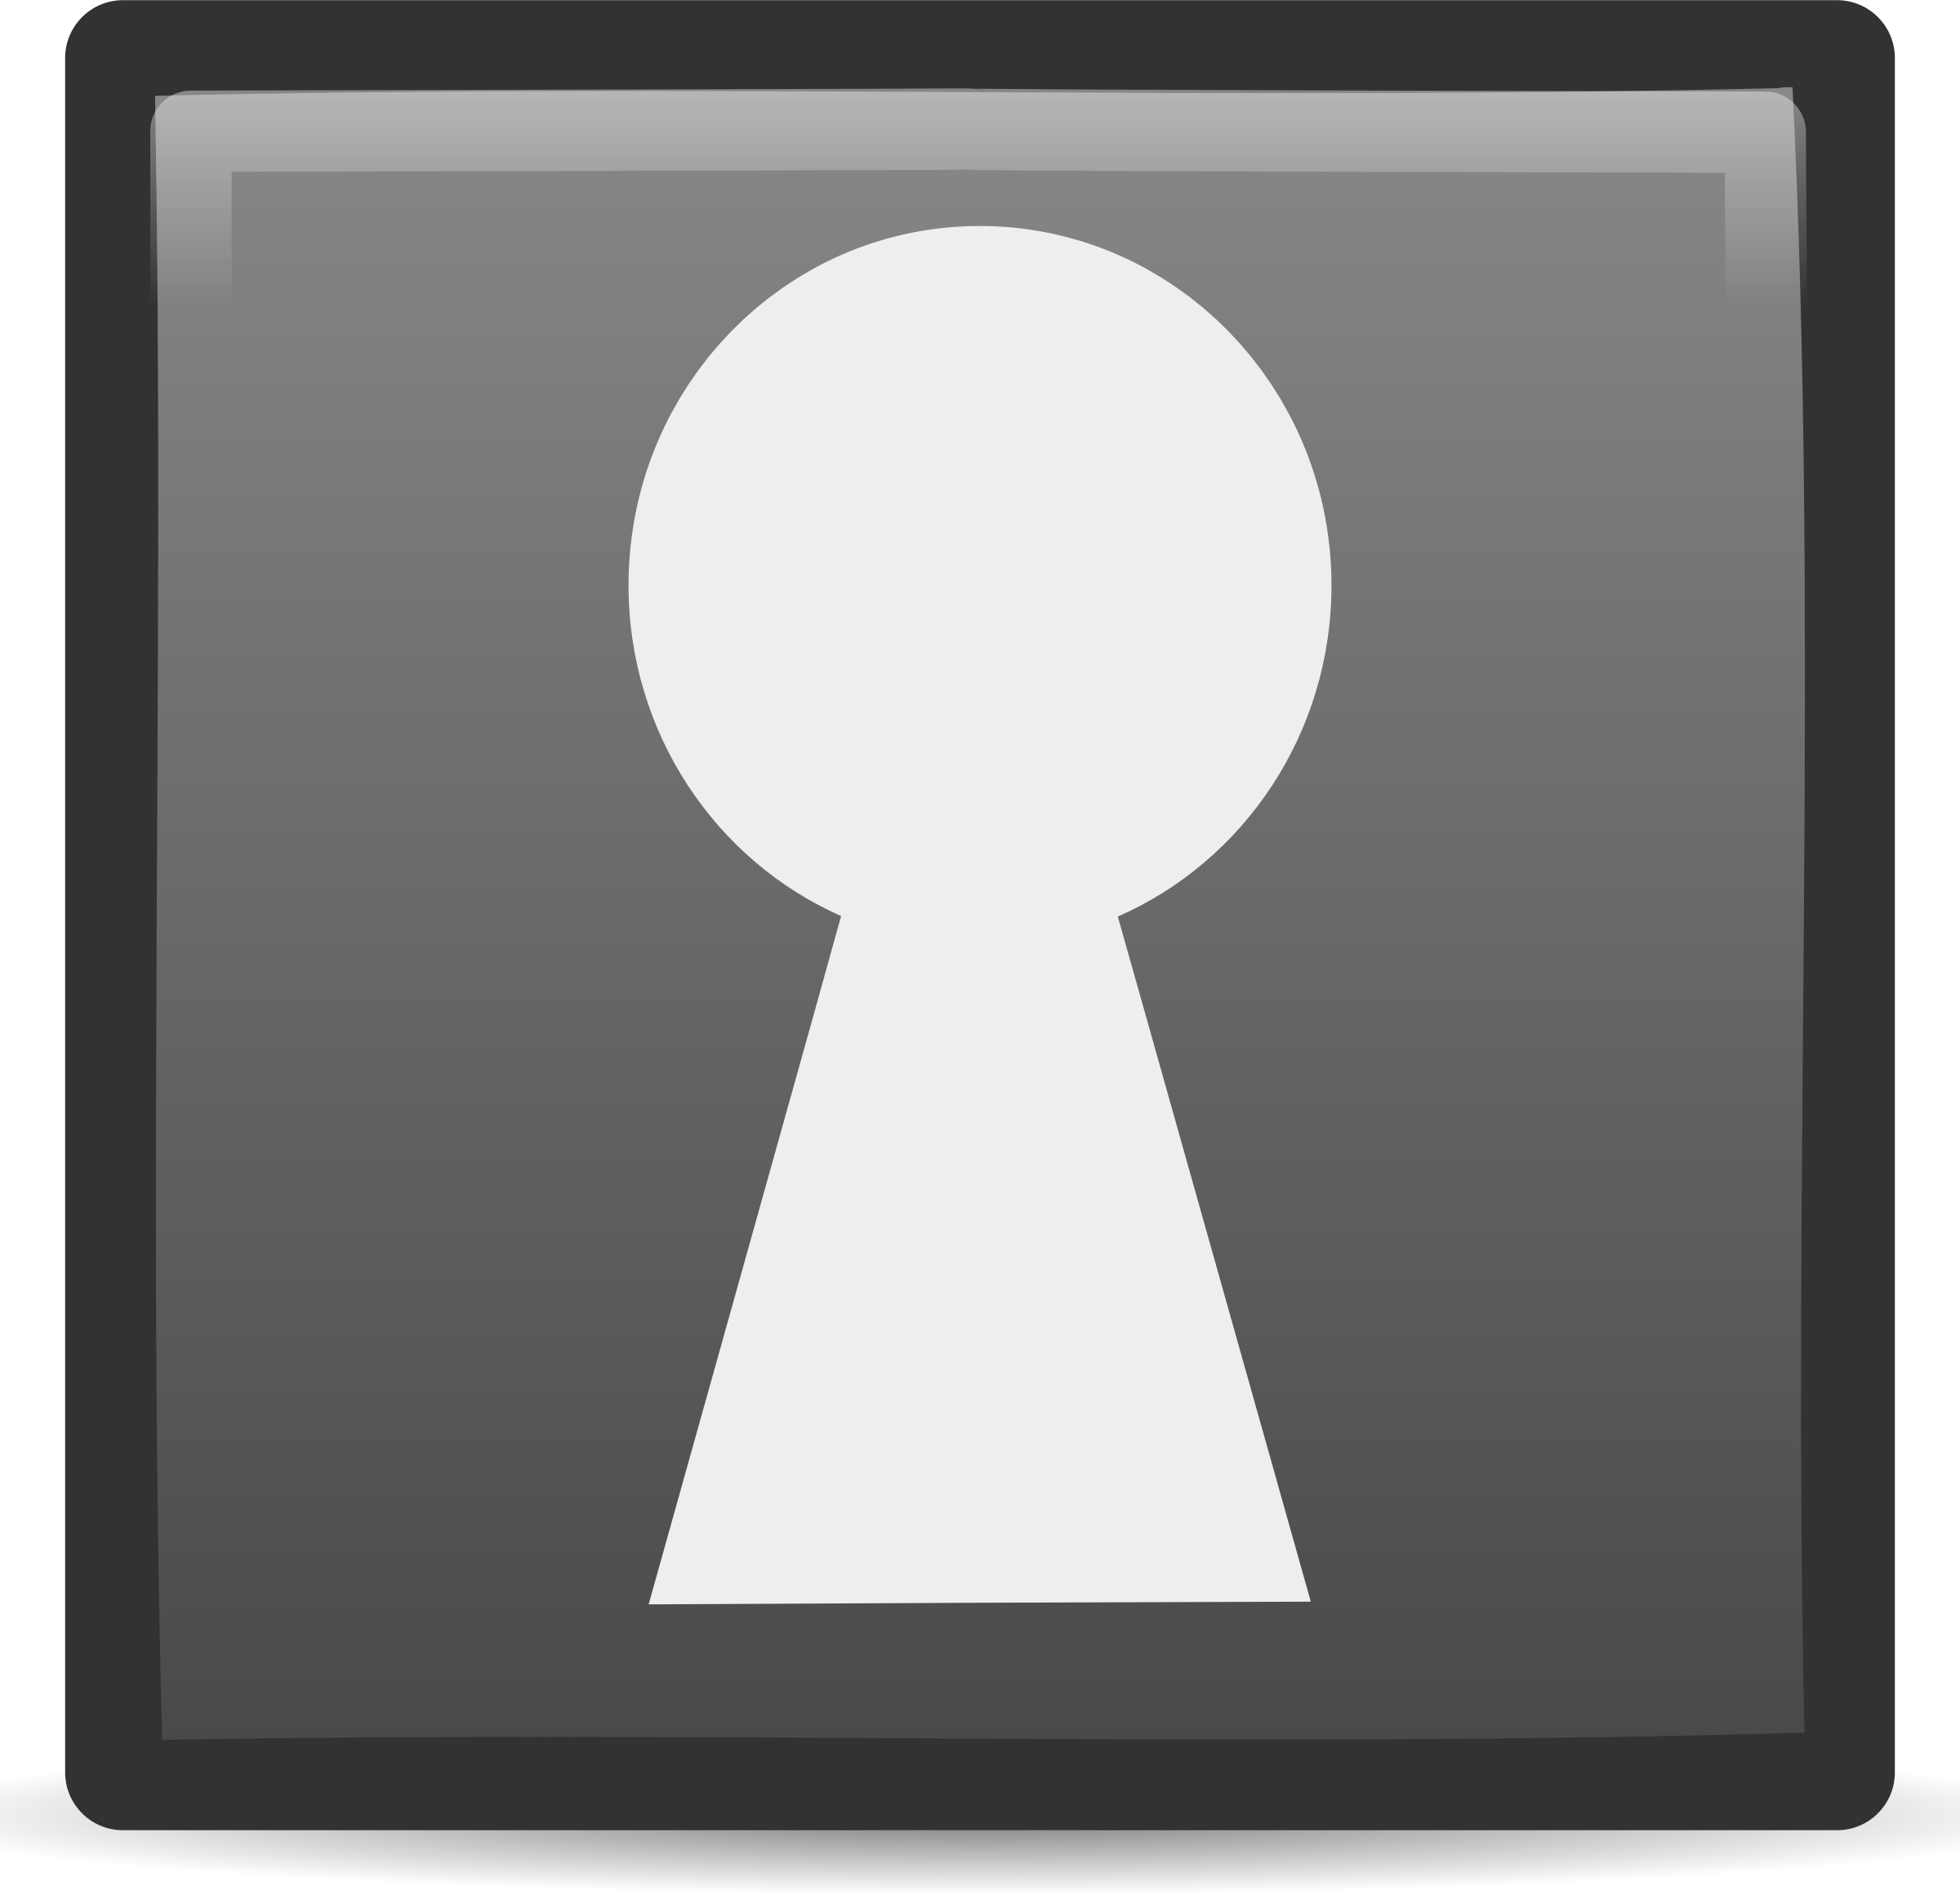 Software Installer Locked Icon by sixsixfive